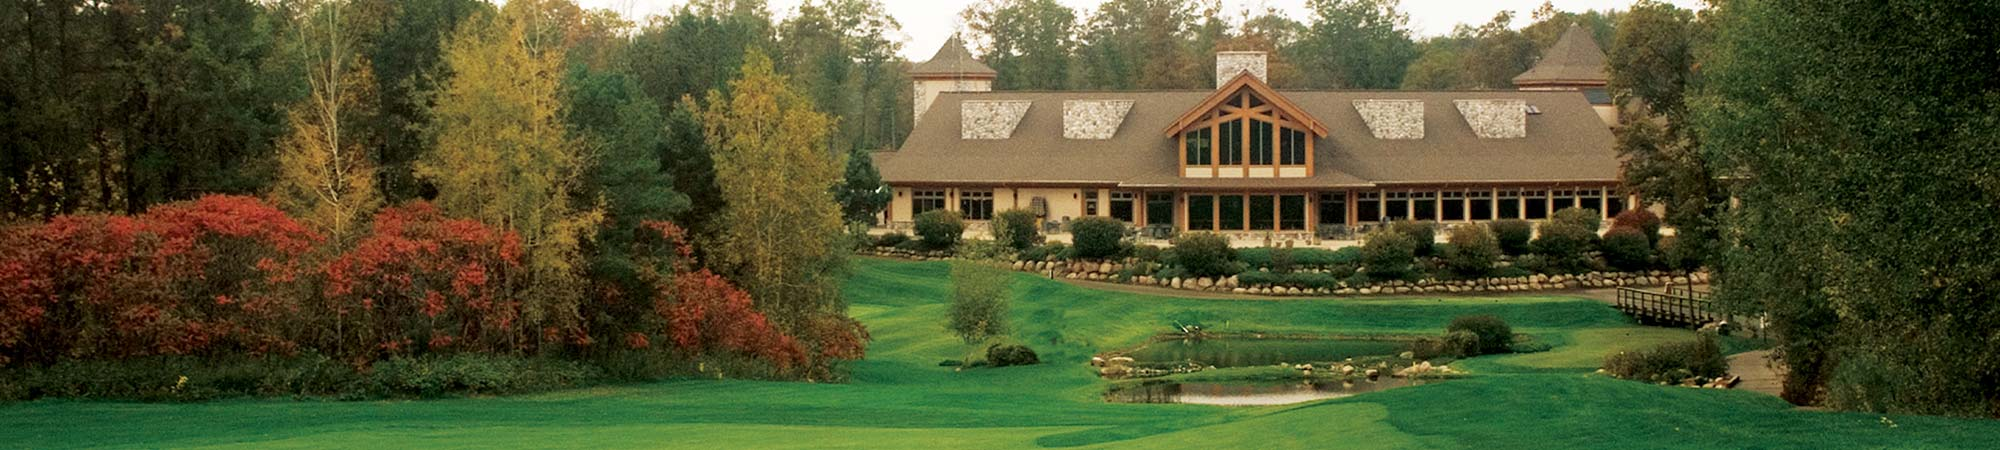 slide-golf-clubhouse_fall_2000x450